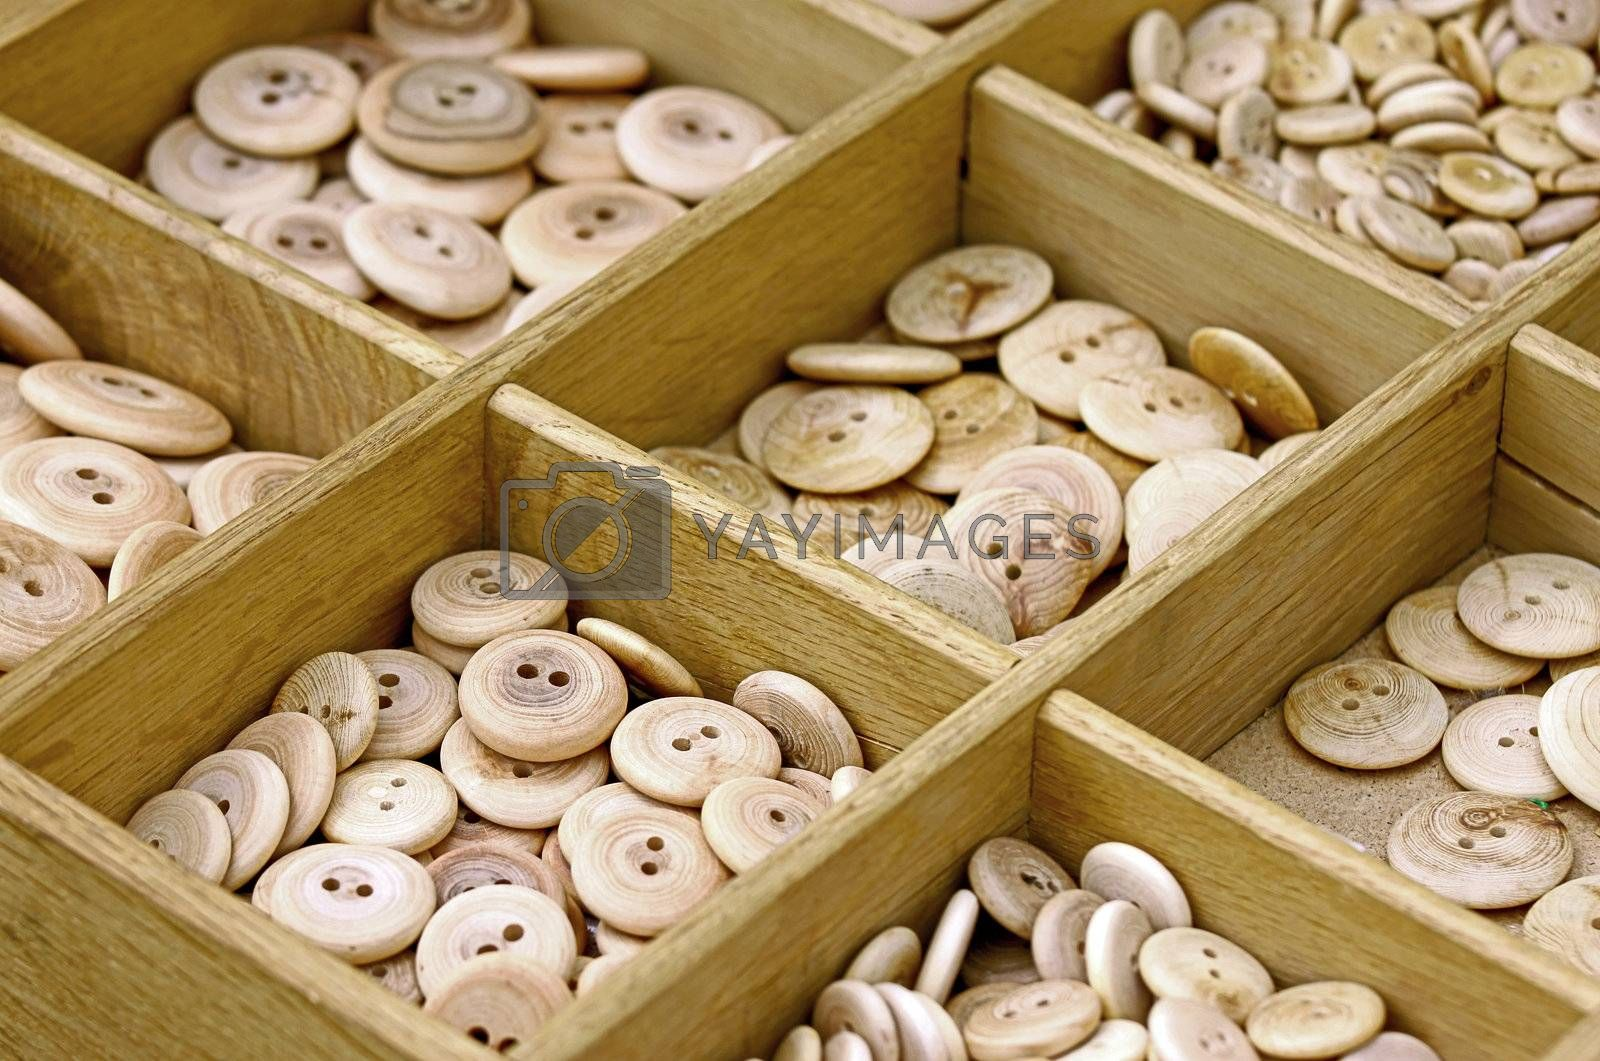 Wooden all alike buttons in wooden box